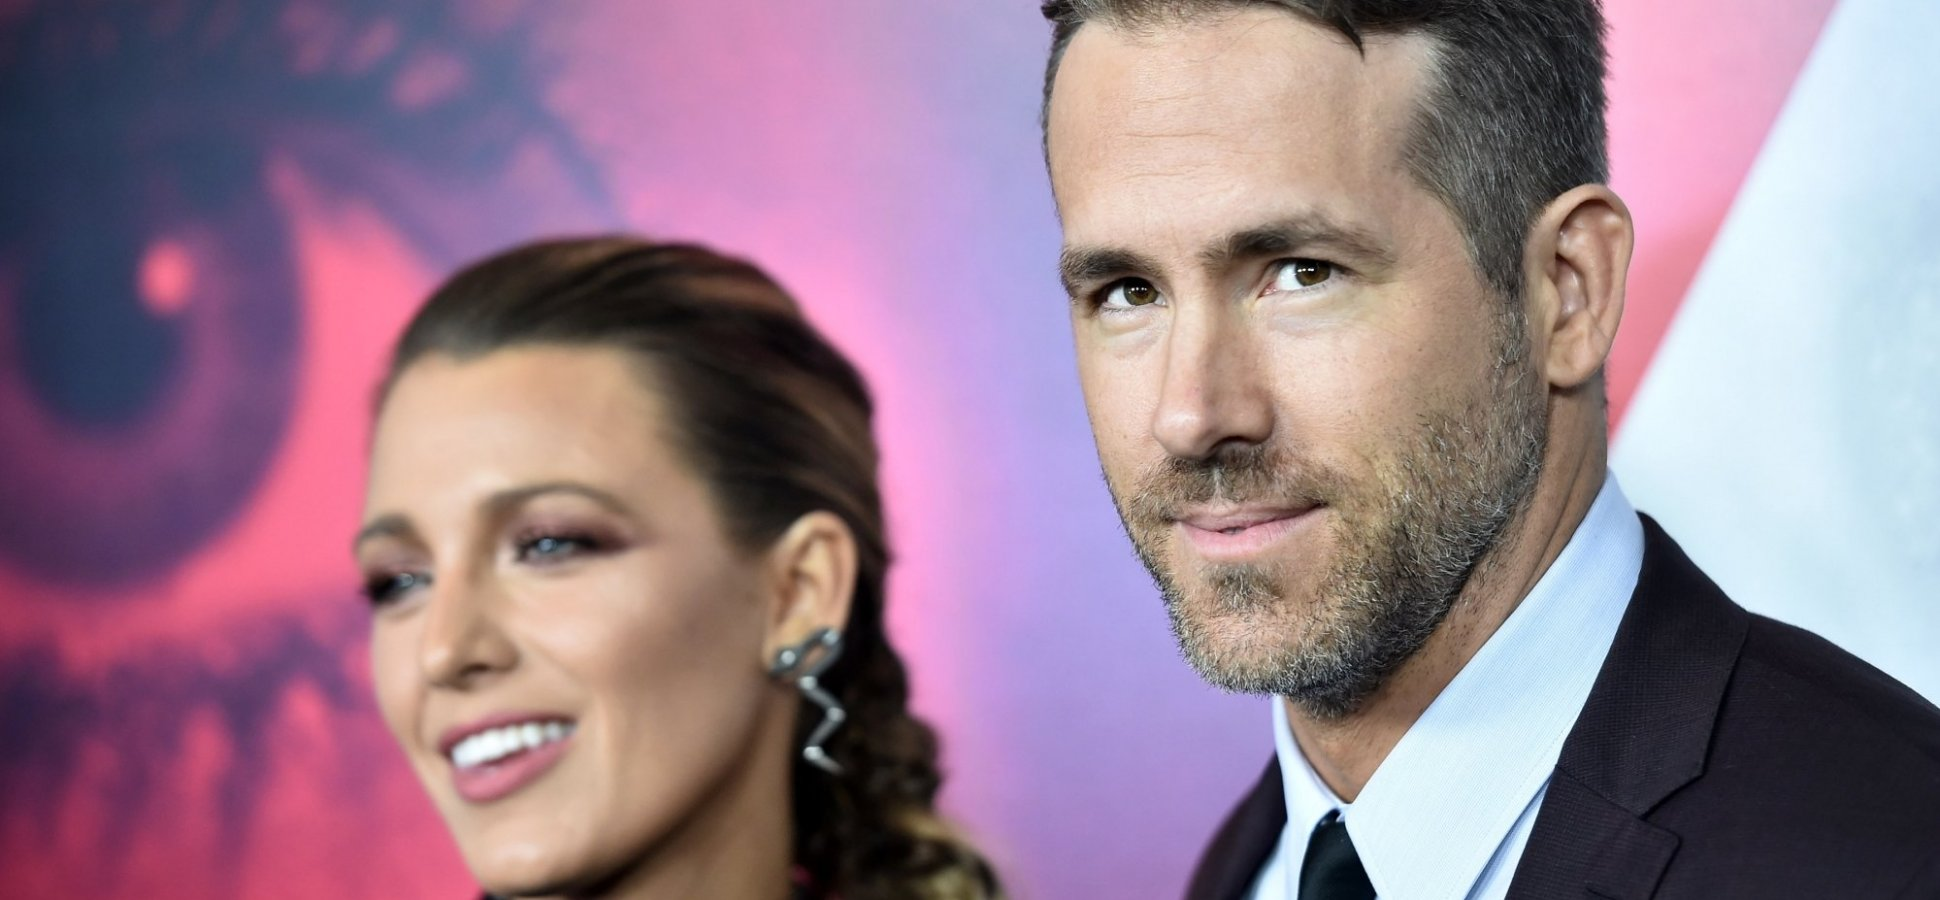 Ryan Reynolds Has Quietly Become One of the Best Marketers On the Planet